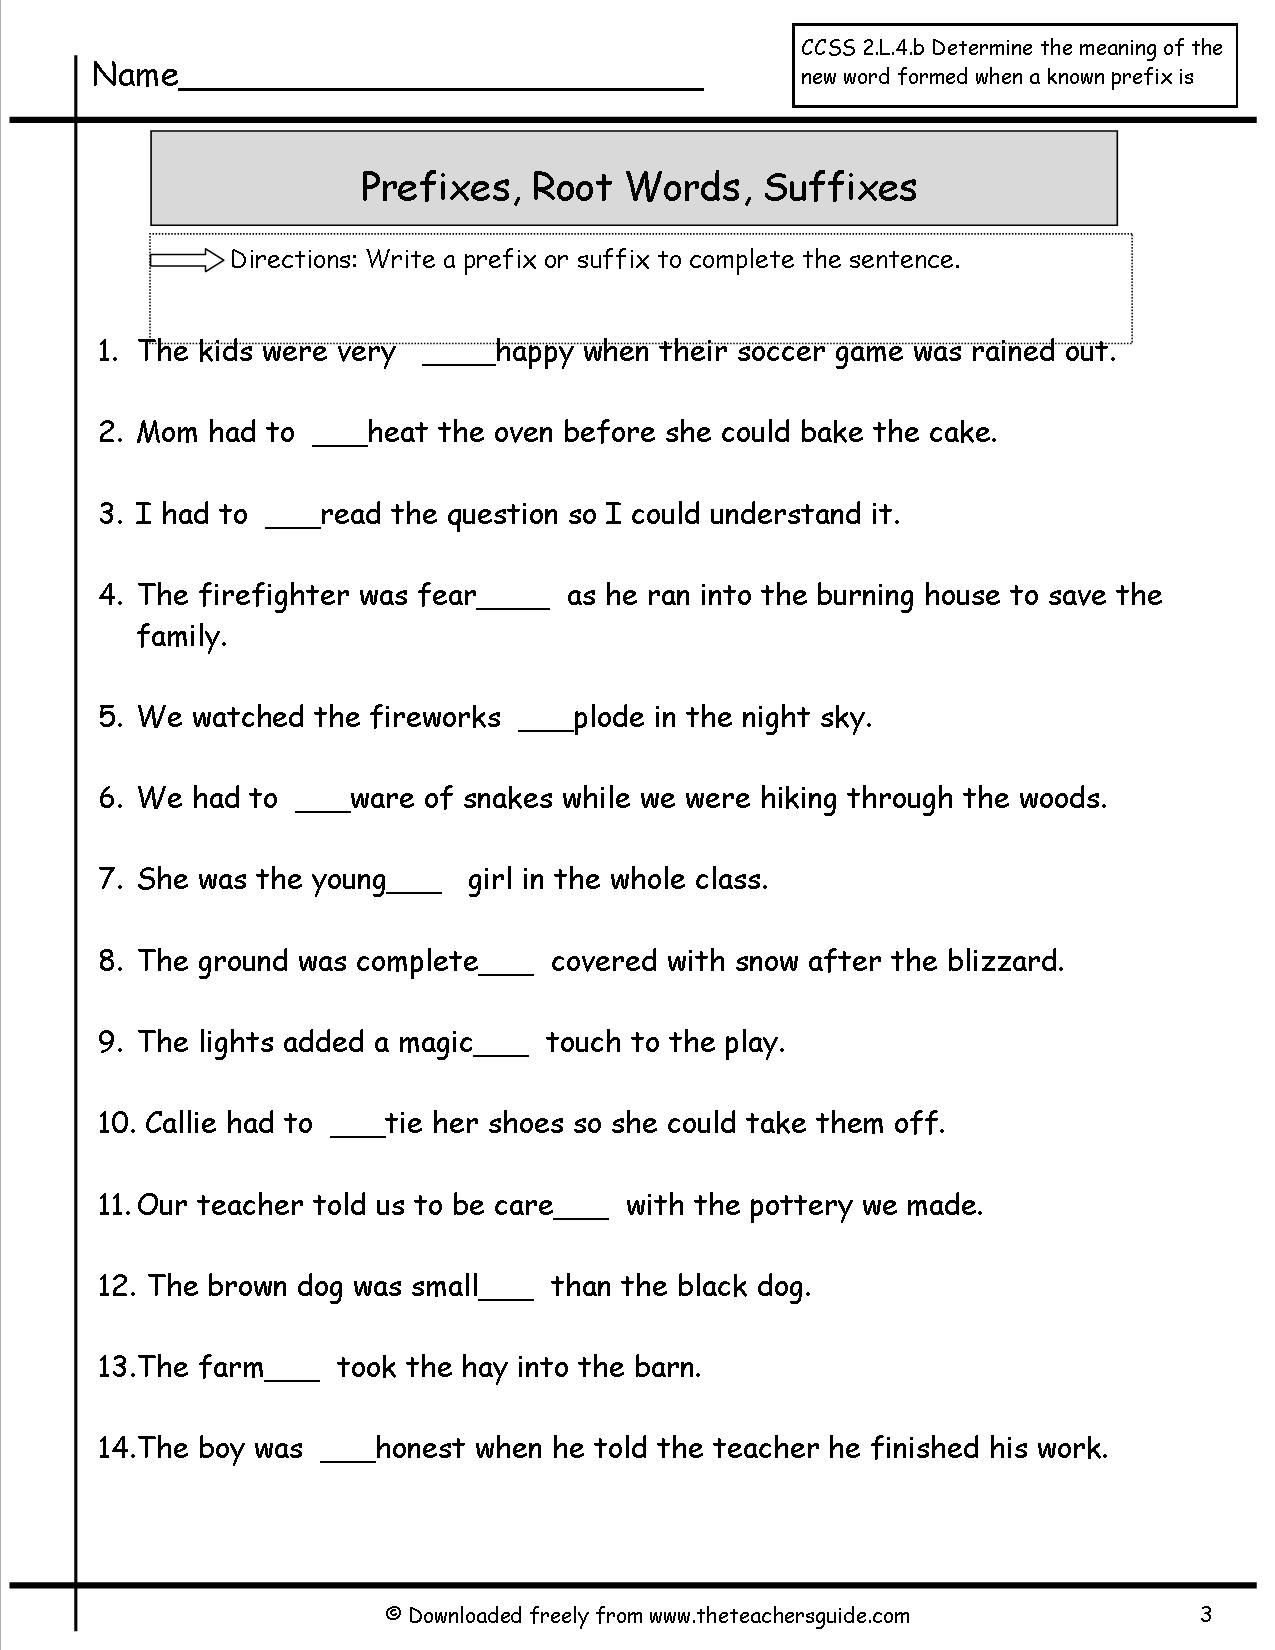 Prefix Worksheets 4th Grade 41 Innovative Prefix Worksheets for You S